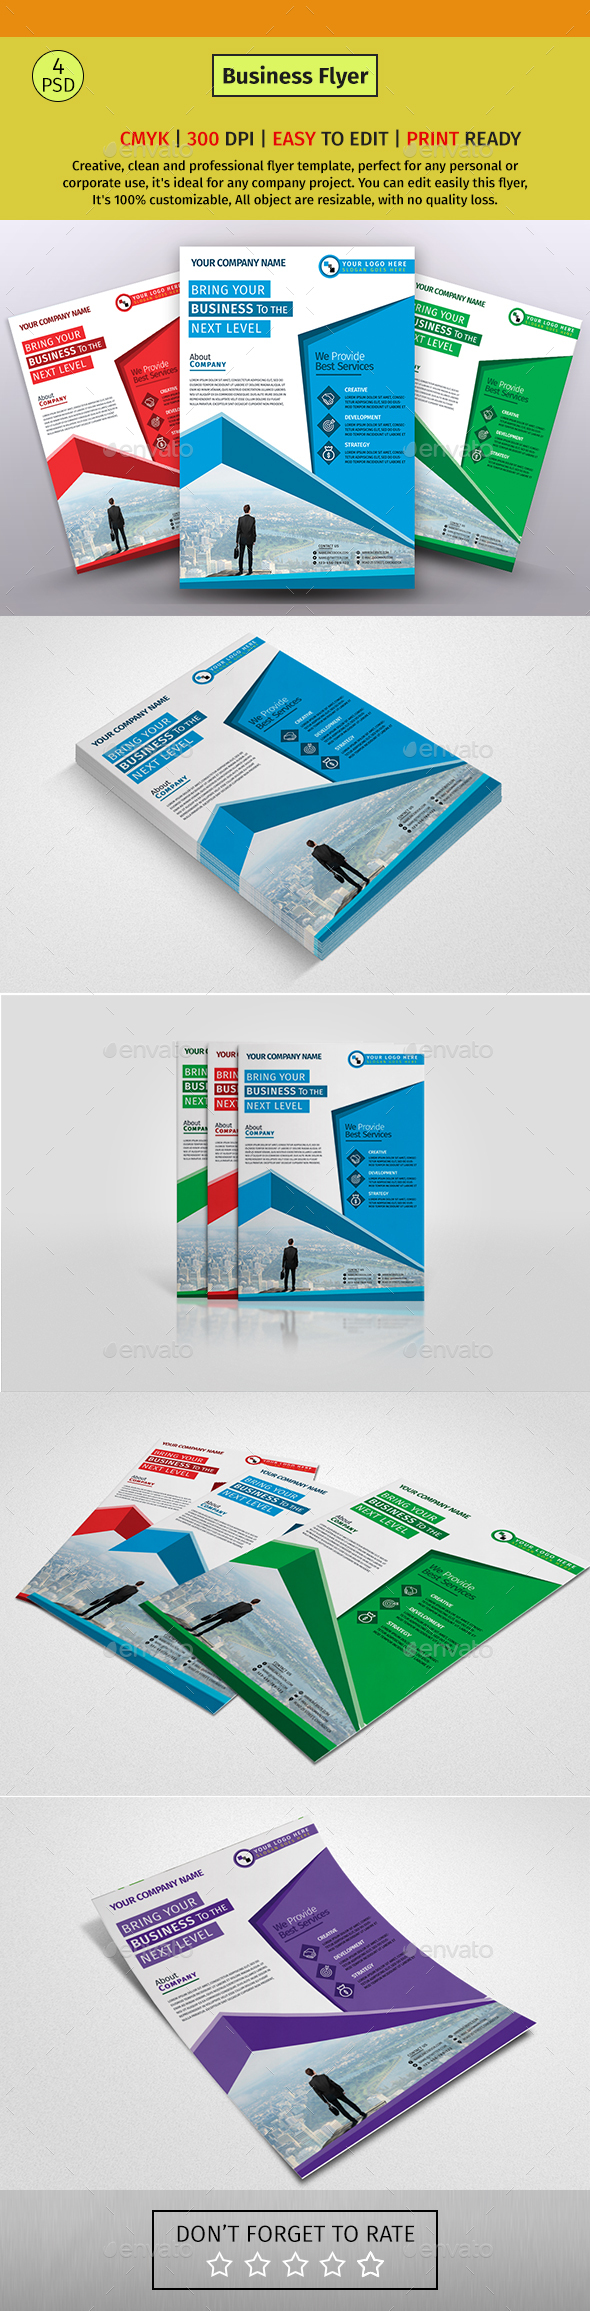 A4 Corporate Business Flyer #137 - Corporate Flyers